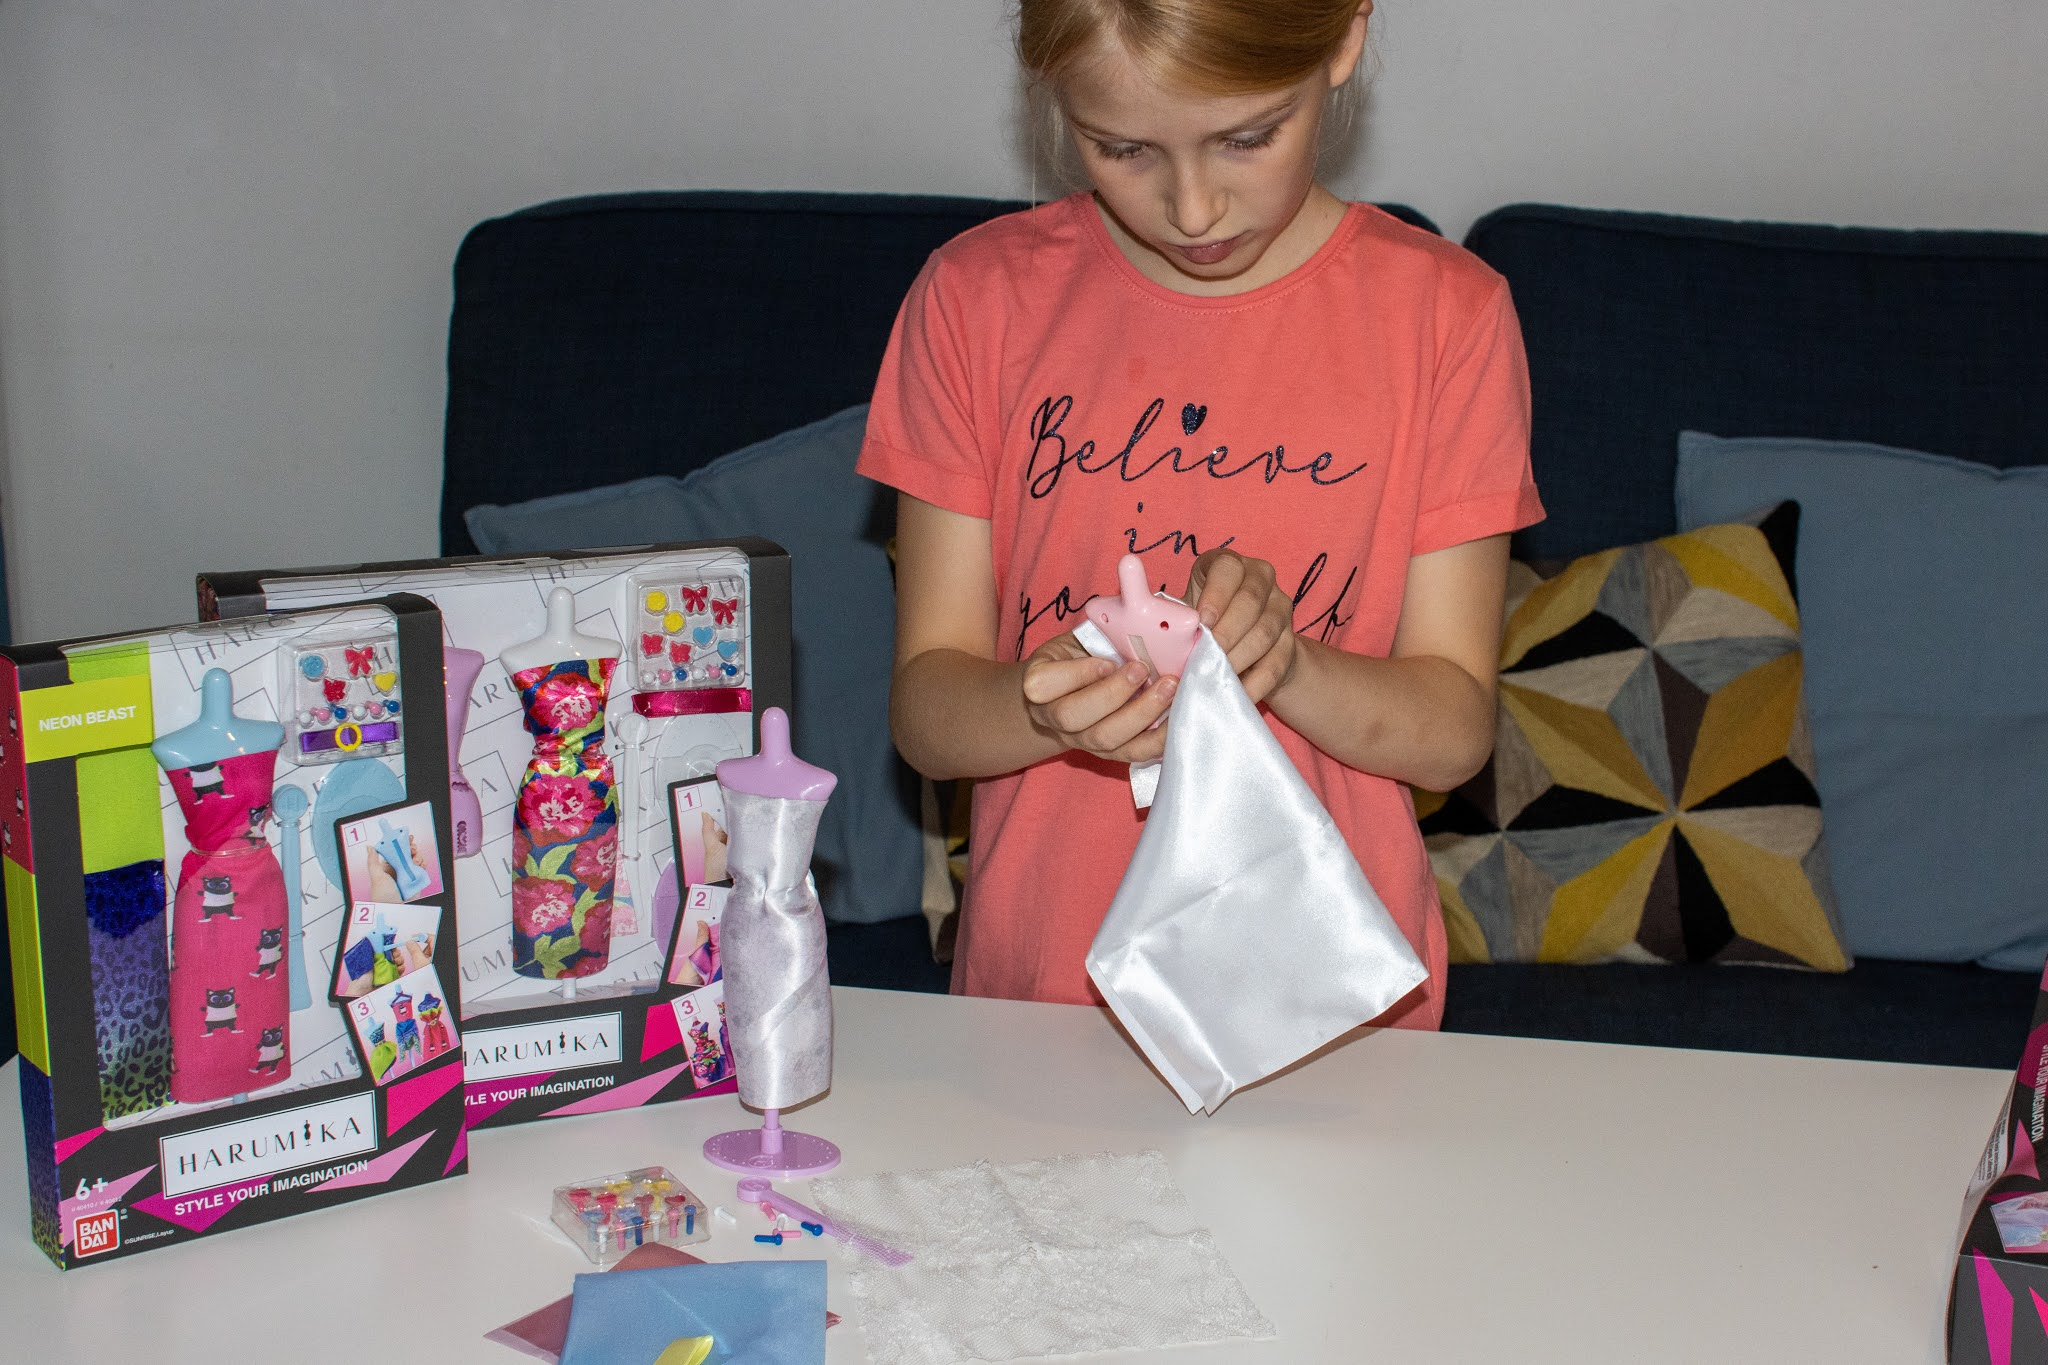 A 9 year old in a believe in yourself t-shirt wrapping white fabric around a toy doll size mannequin